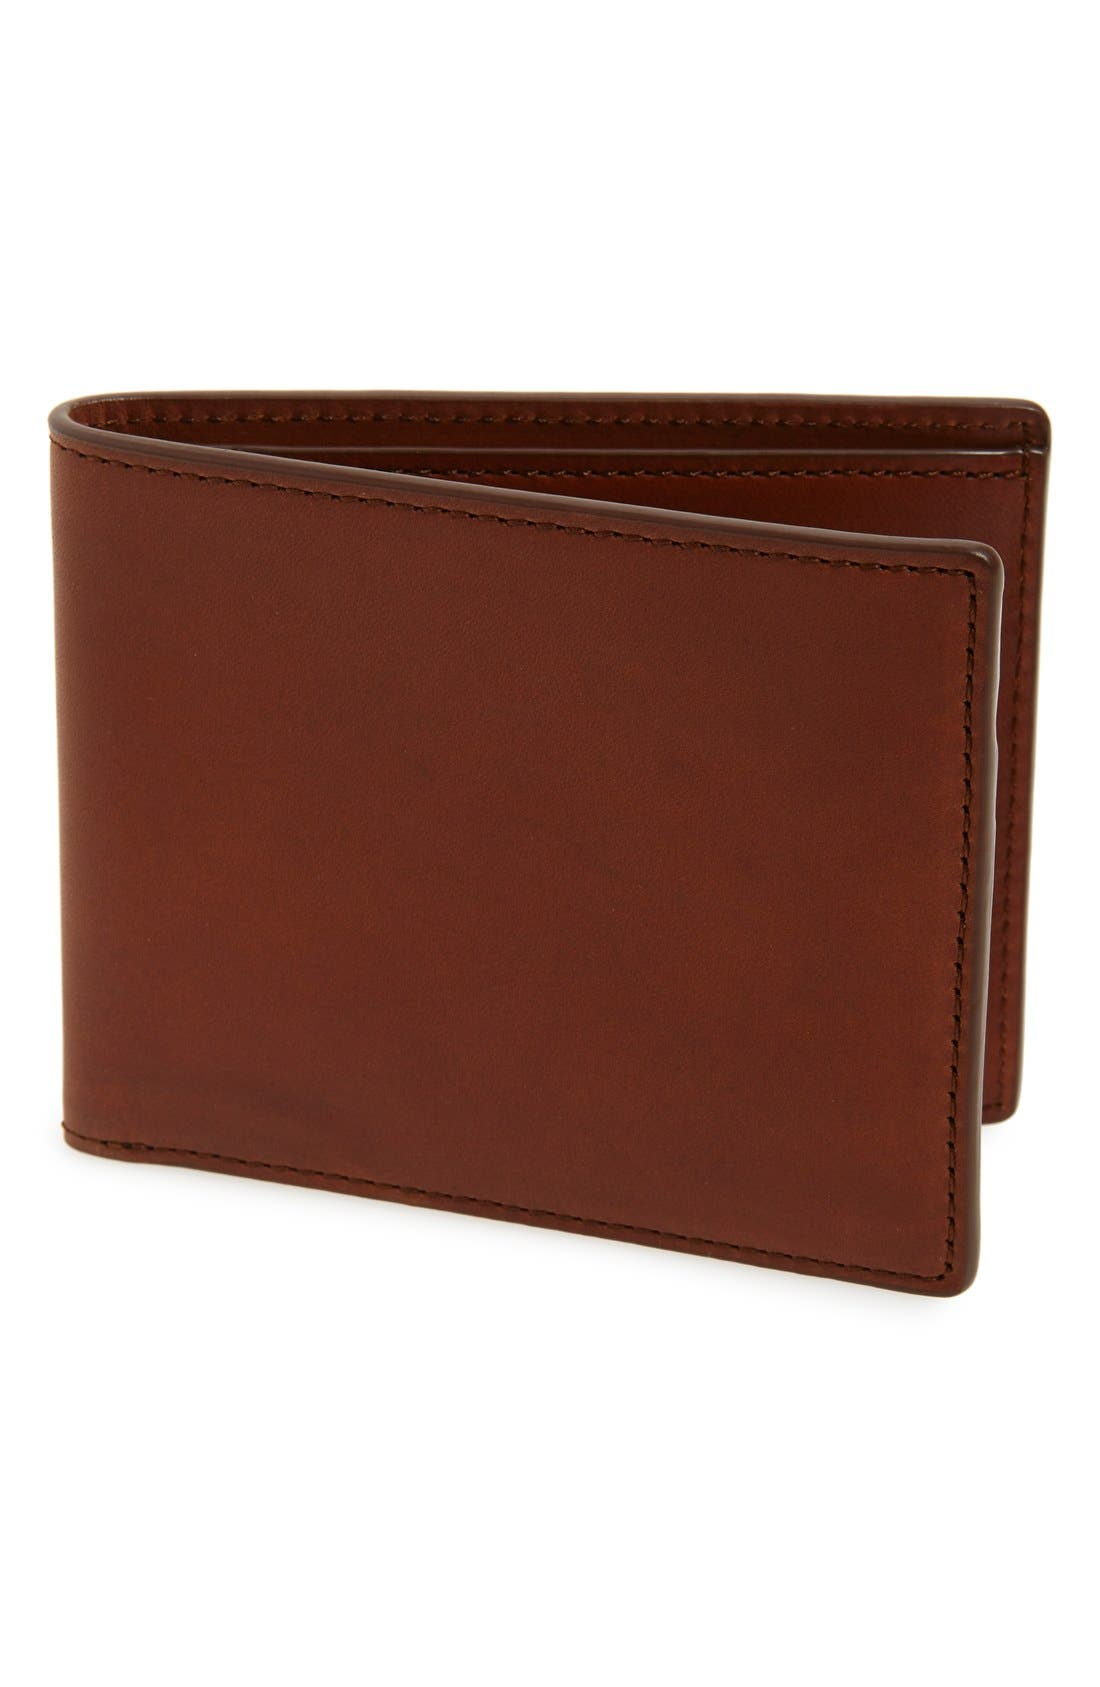 Hampshire Leather Bifold Wallet,                             Main thumbnail 1, color,                             Brown